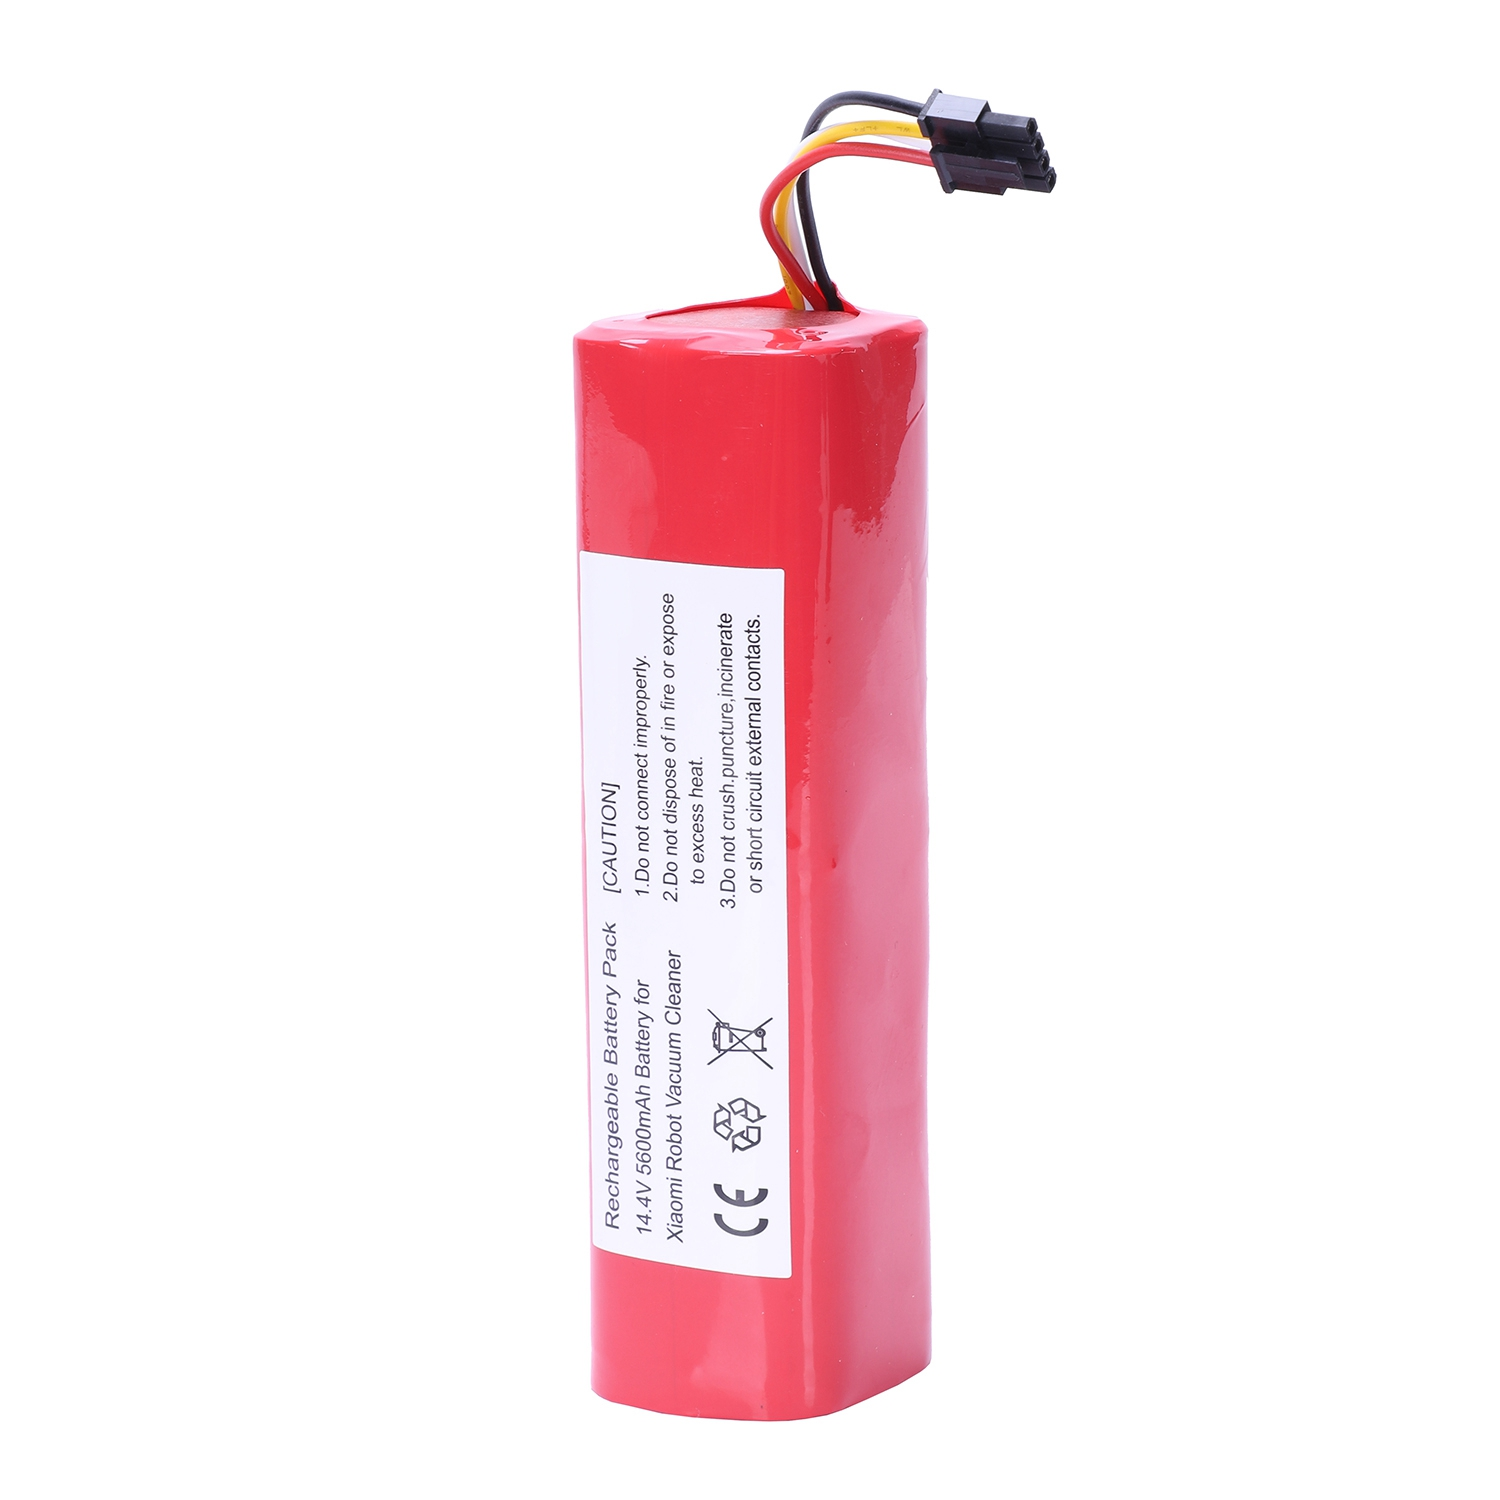 TOD-Rechargeable 5200Mah Battery For Xiaomi Robot Vacuum Cleaner Li-Ion Lithium Accessories PartsTOD-Rechargeable 5200Mah Battery For Xiaomi Robot Vacuum Cleaner Li-Ion Lithium Accessories Parts